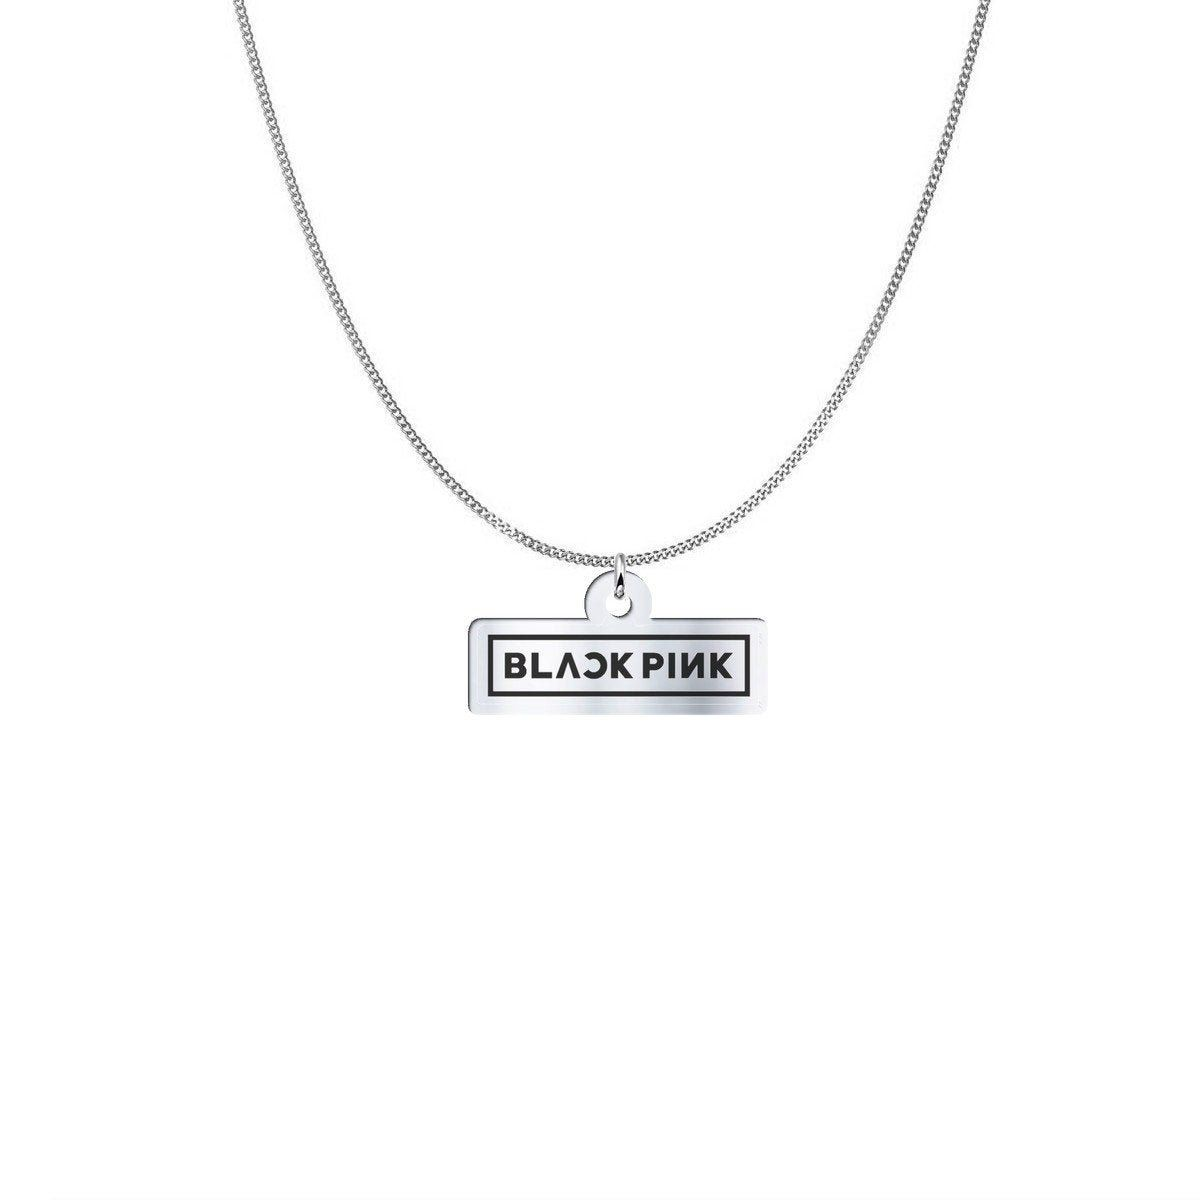 Blackpink Necklace 925 Sterling Silver Silver Plated Etsy In 2020 Solid Silver Necklace 925 Sterling Silver Girly Jewelry